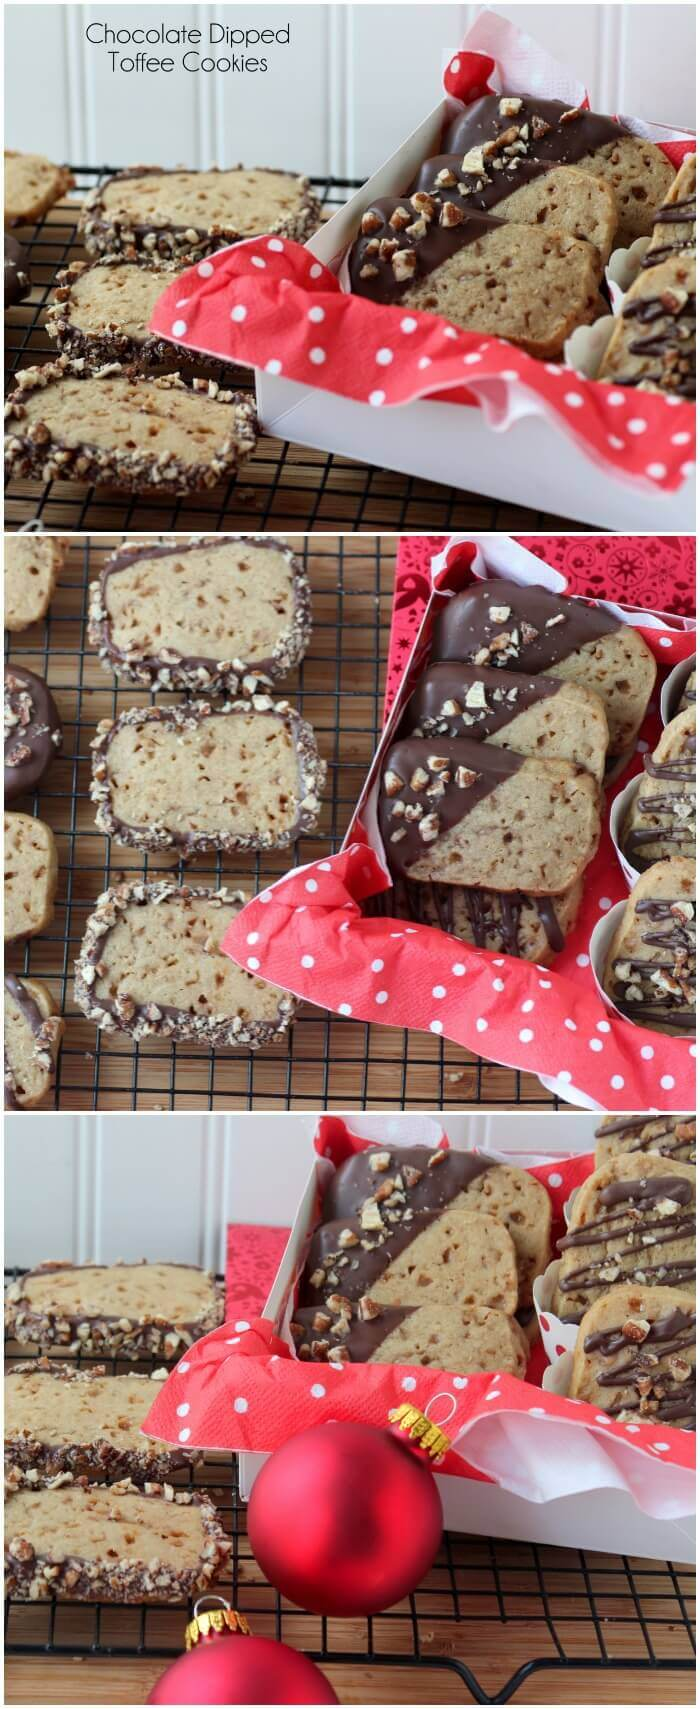 Slice and Bake Toffee Cookies are drizzled with chocolate and chopped almonds.